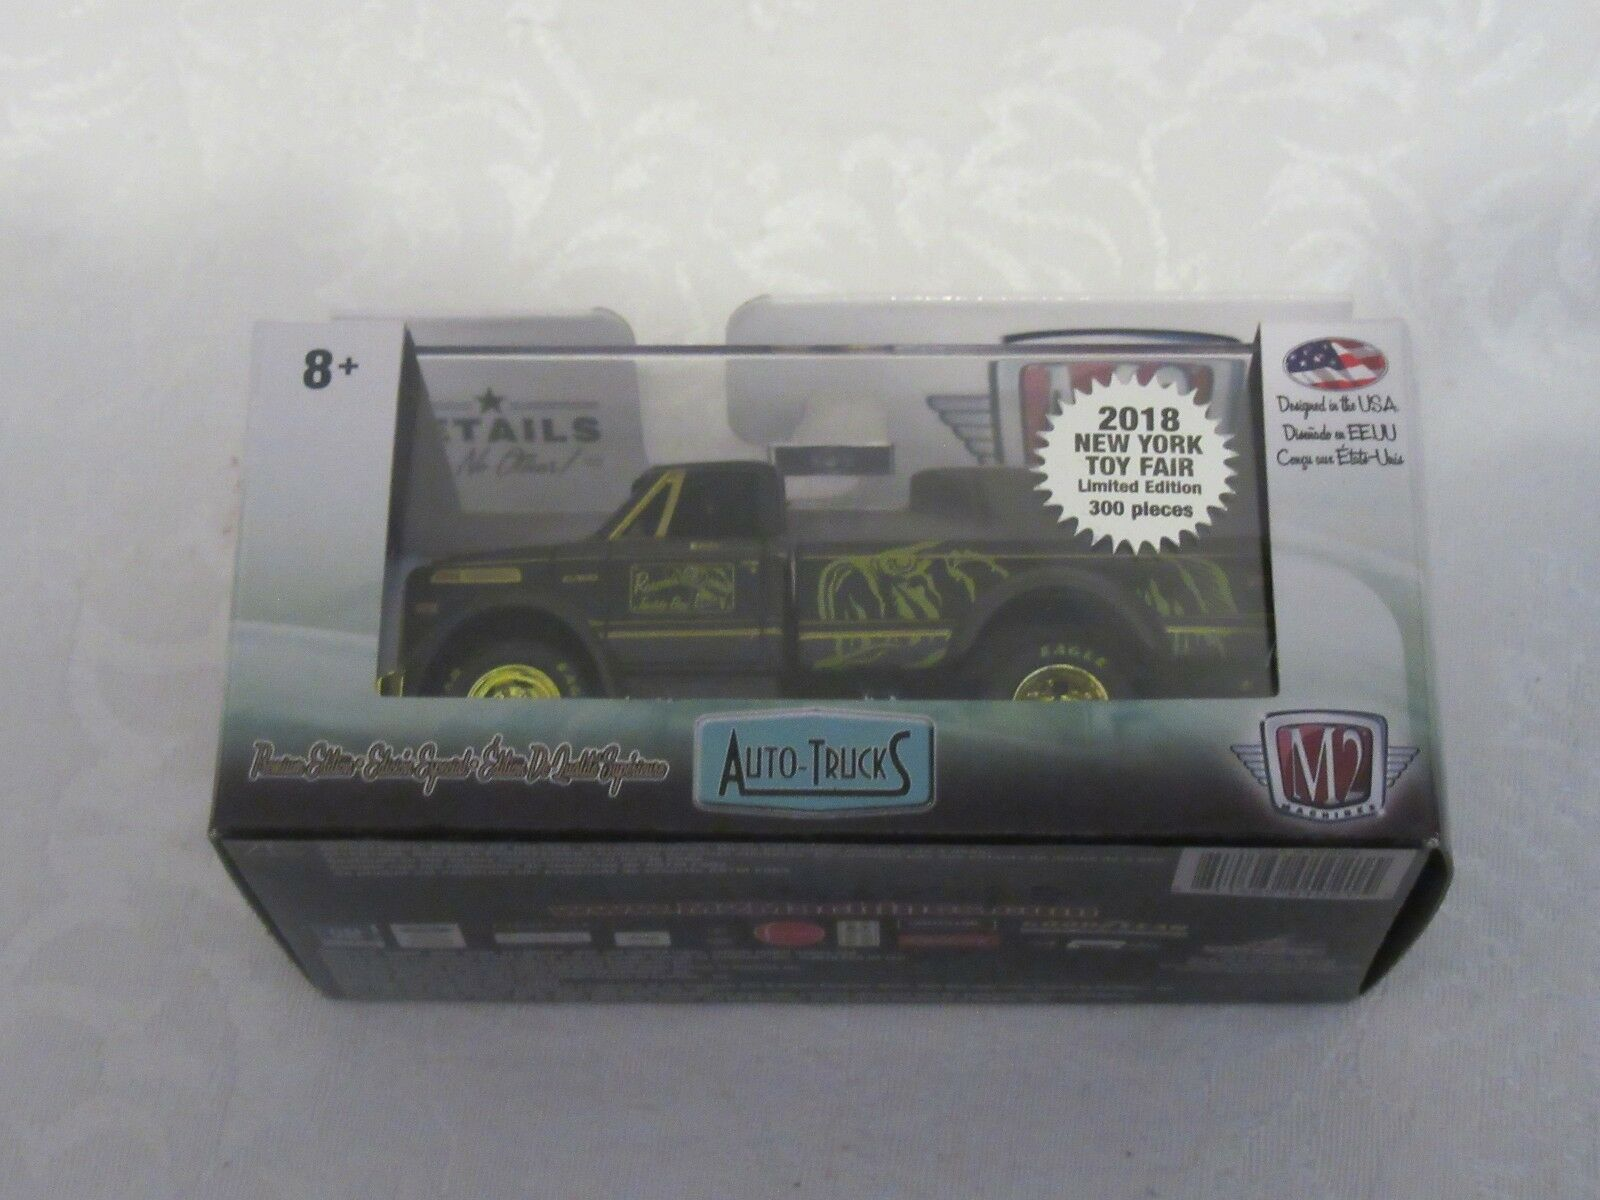 NY Toy Fair 2018 New York Exclusive M2 1970 Chevrolet C60 Chase Variant gold Rim